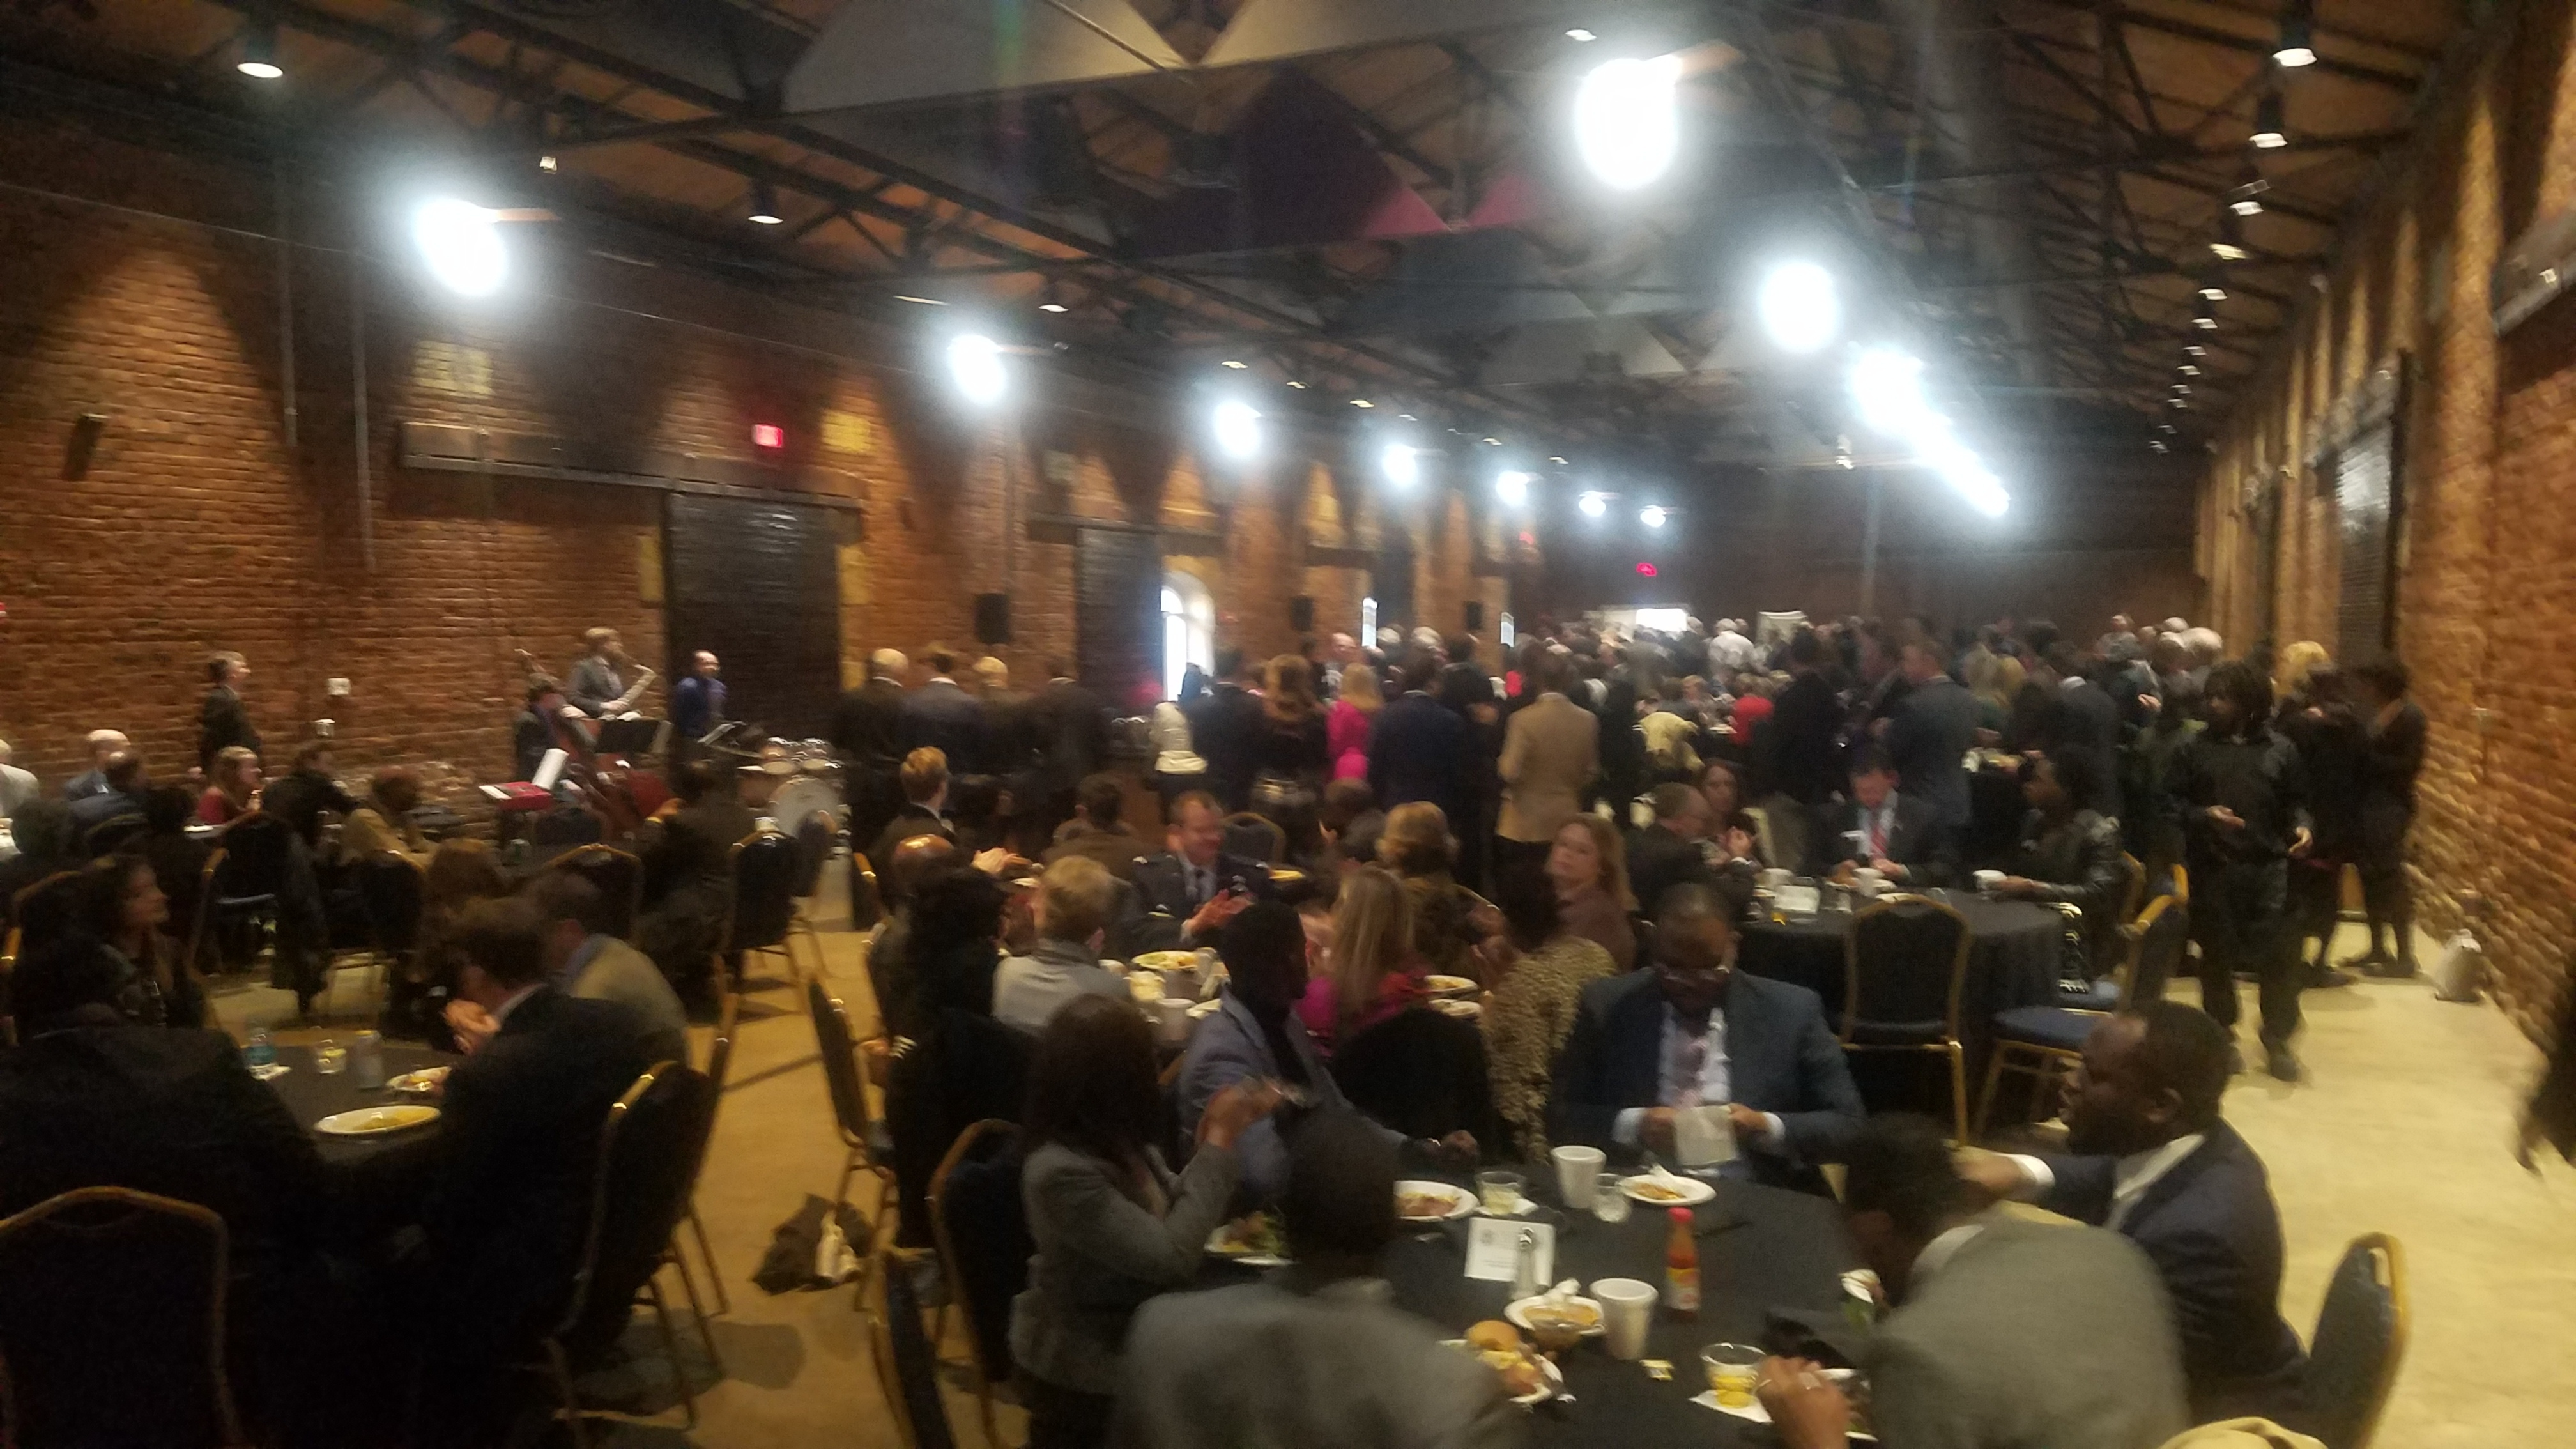 4032x2268 Packed house, Inside, in Lowndes County Bird Supper, Atlanta, GA, by John S. Quarterman, for www.l-a-k-e.org, 13 February 2019